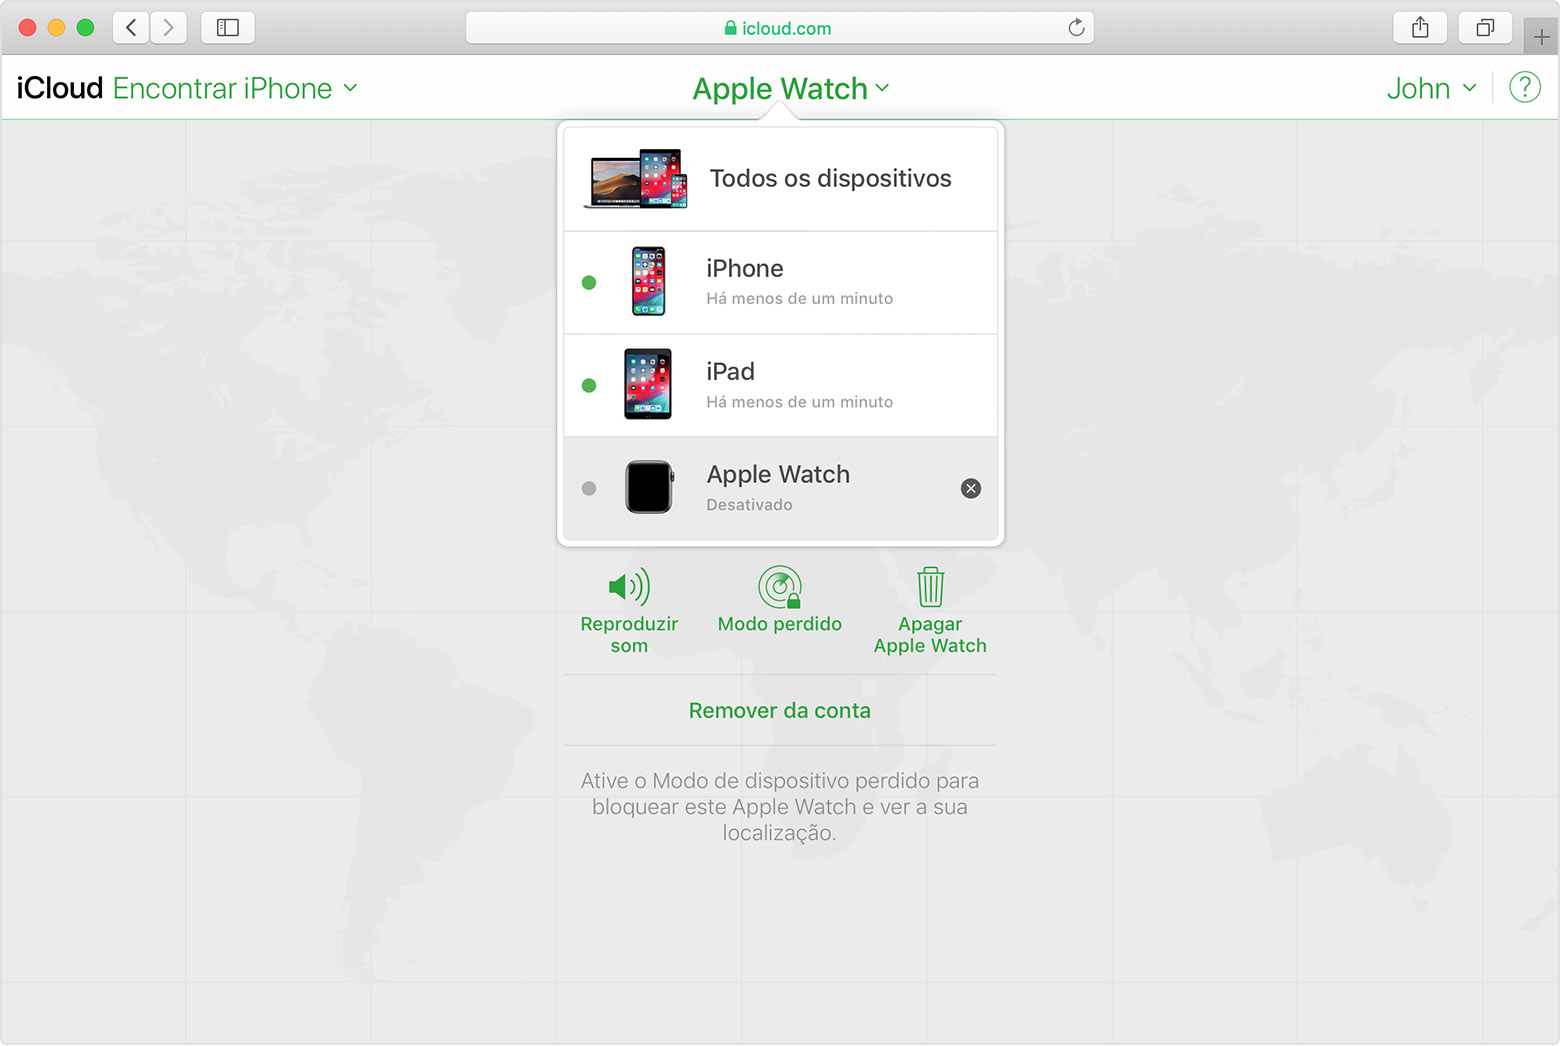 App Encontrar iPhone do iCloud a mostrar o Apple Watch de João